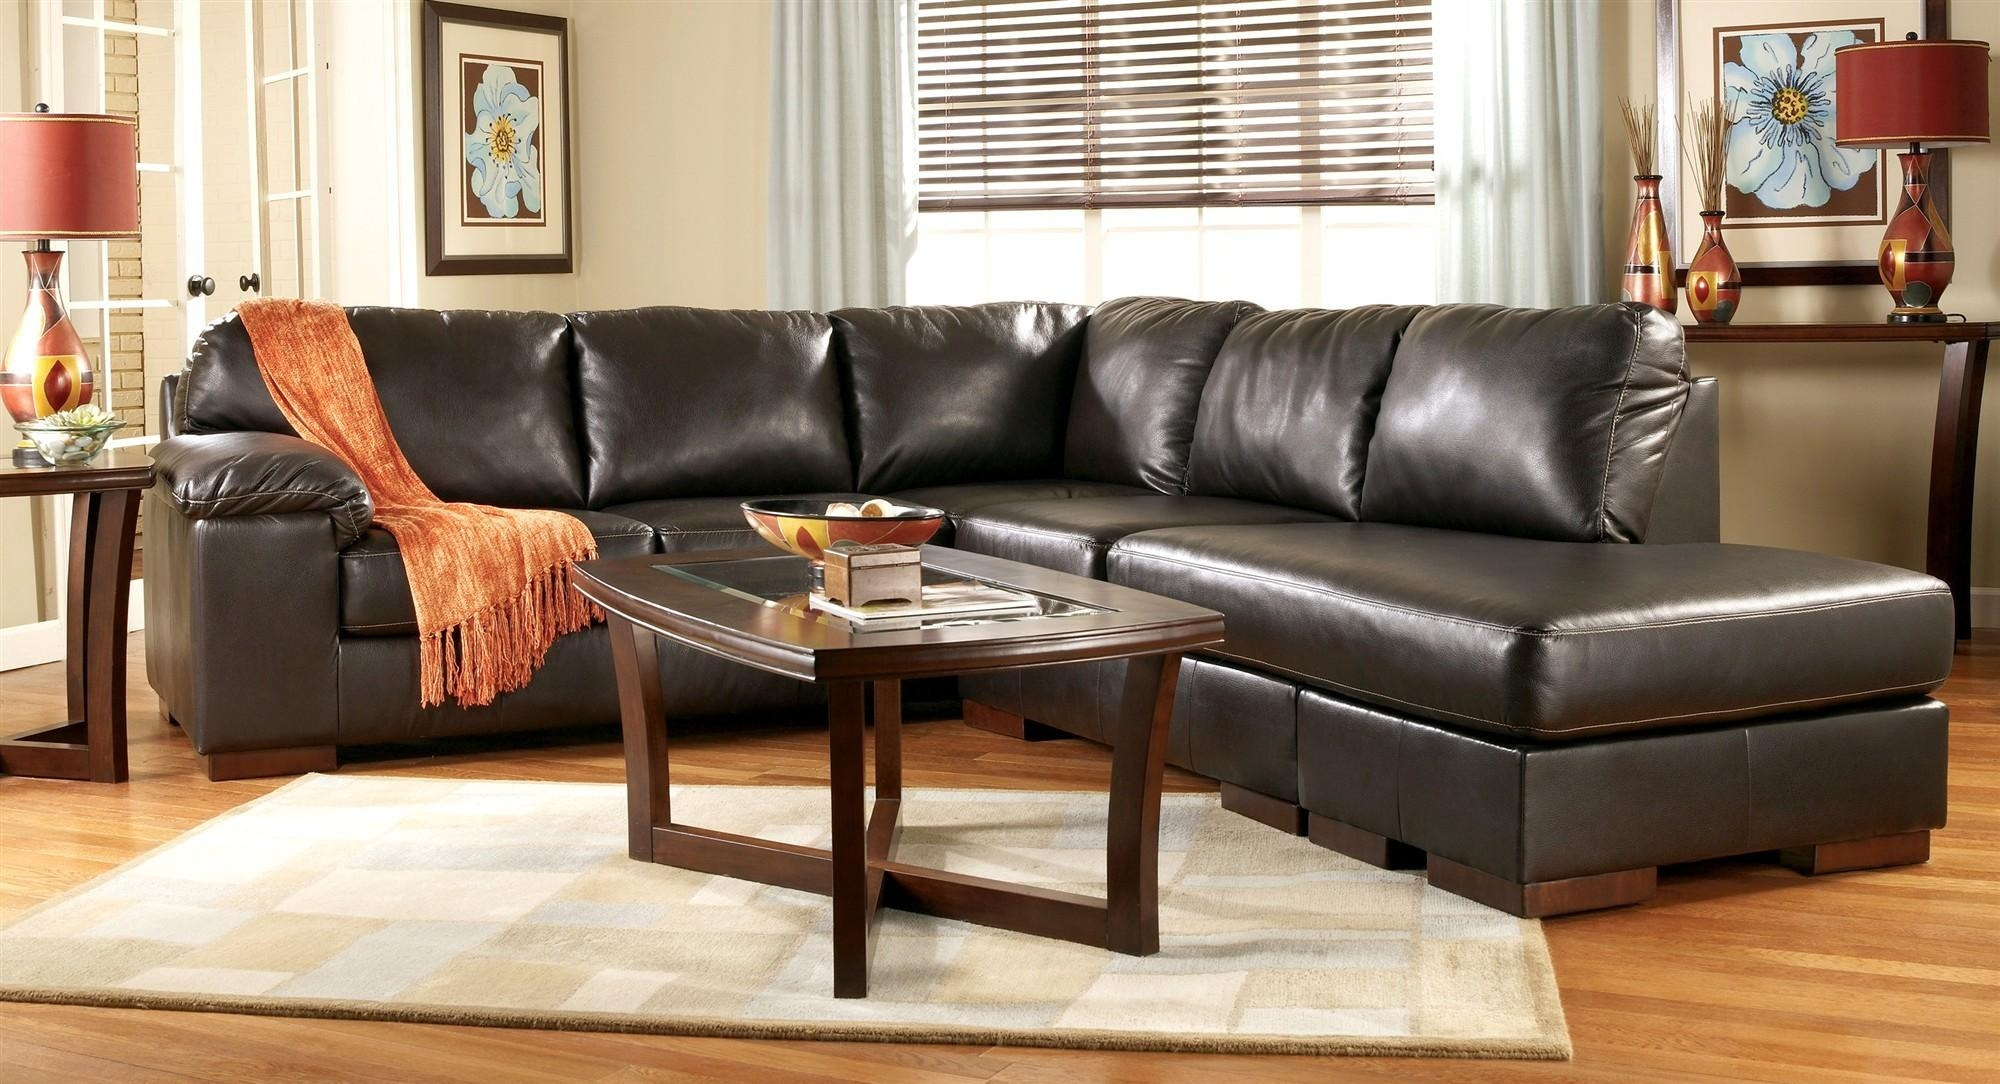 Curved Sectional Sofa Leather | Tehranmix Decoration In Leather Curved Sectional (Image 4 of 20)